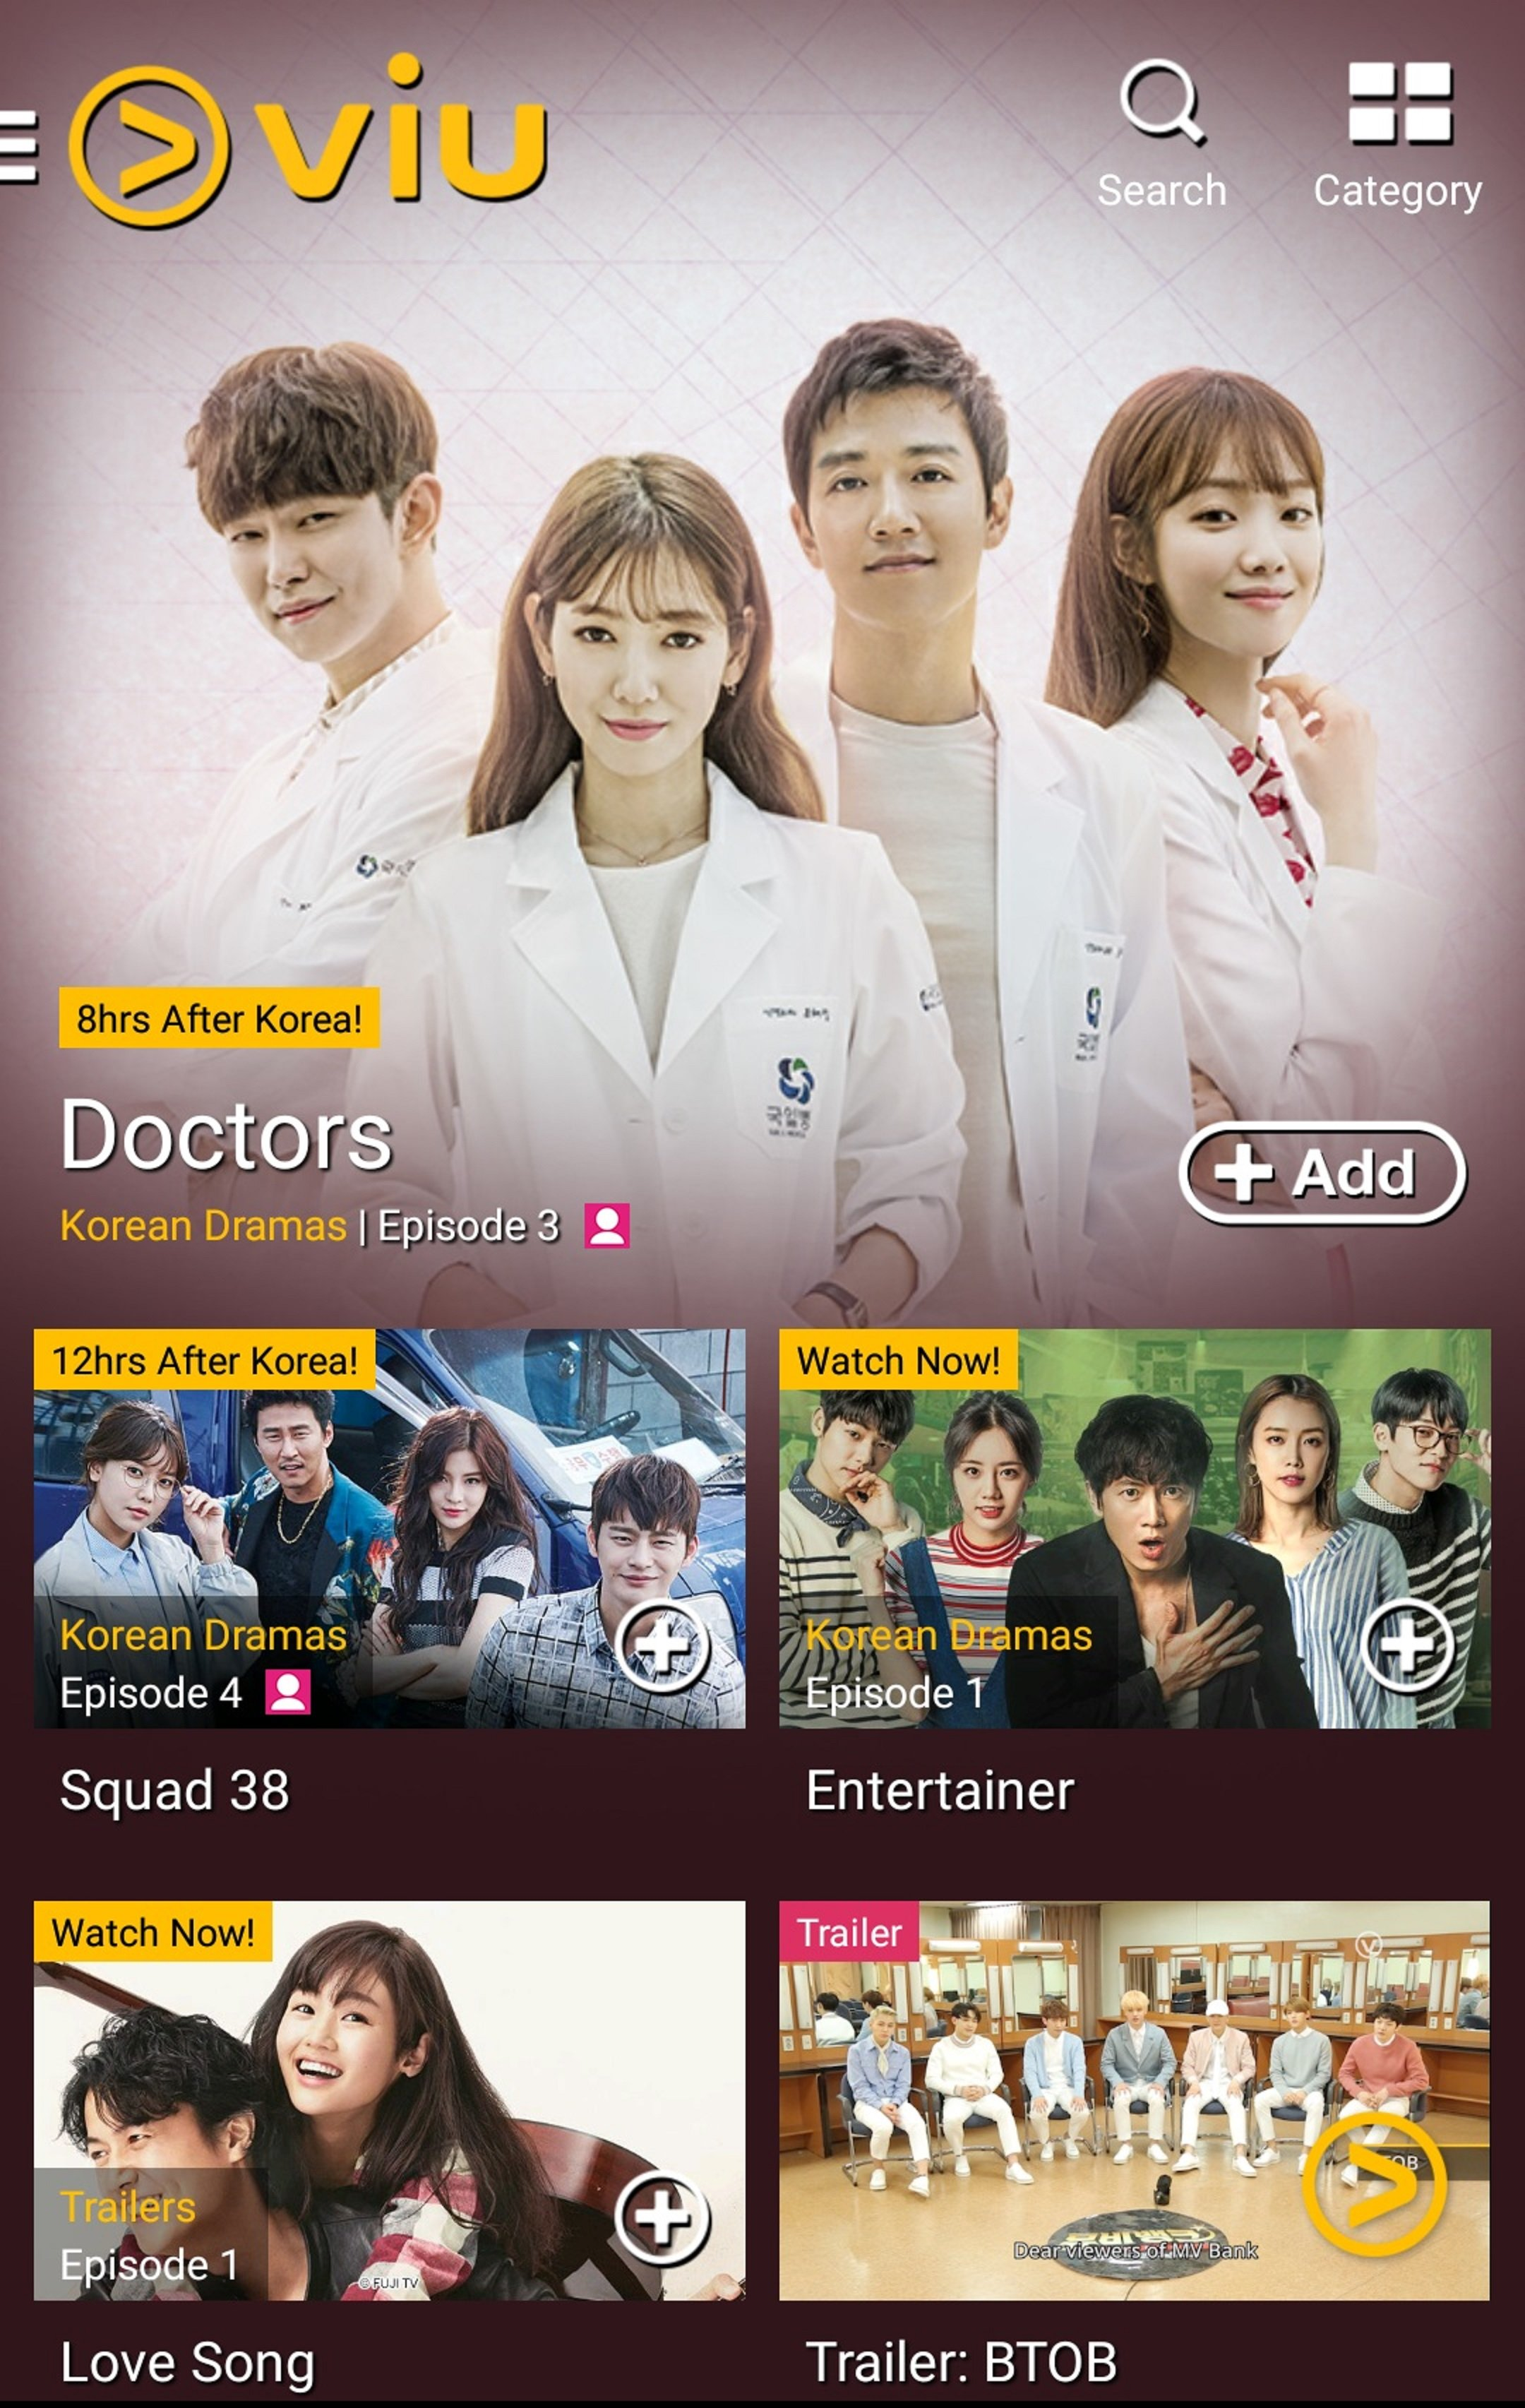 NEWS] Viu goes premium with better features and exclusive